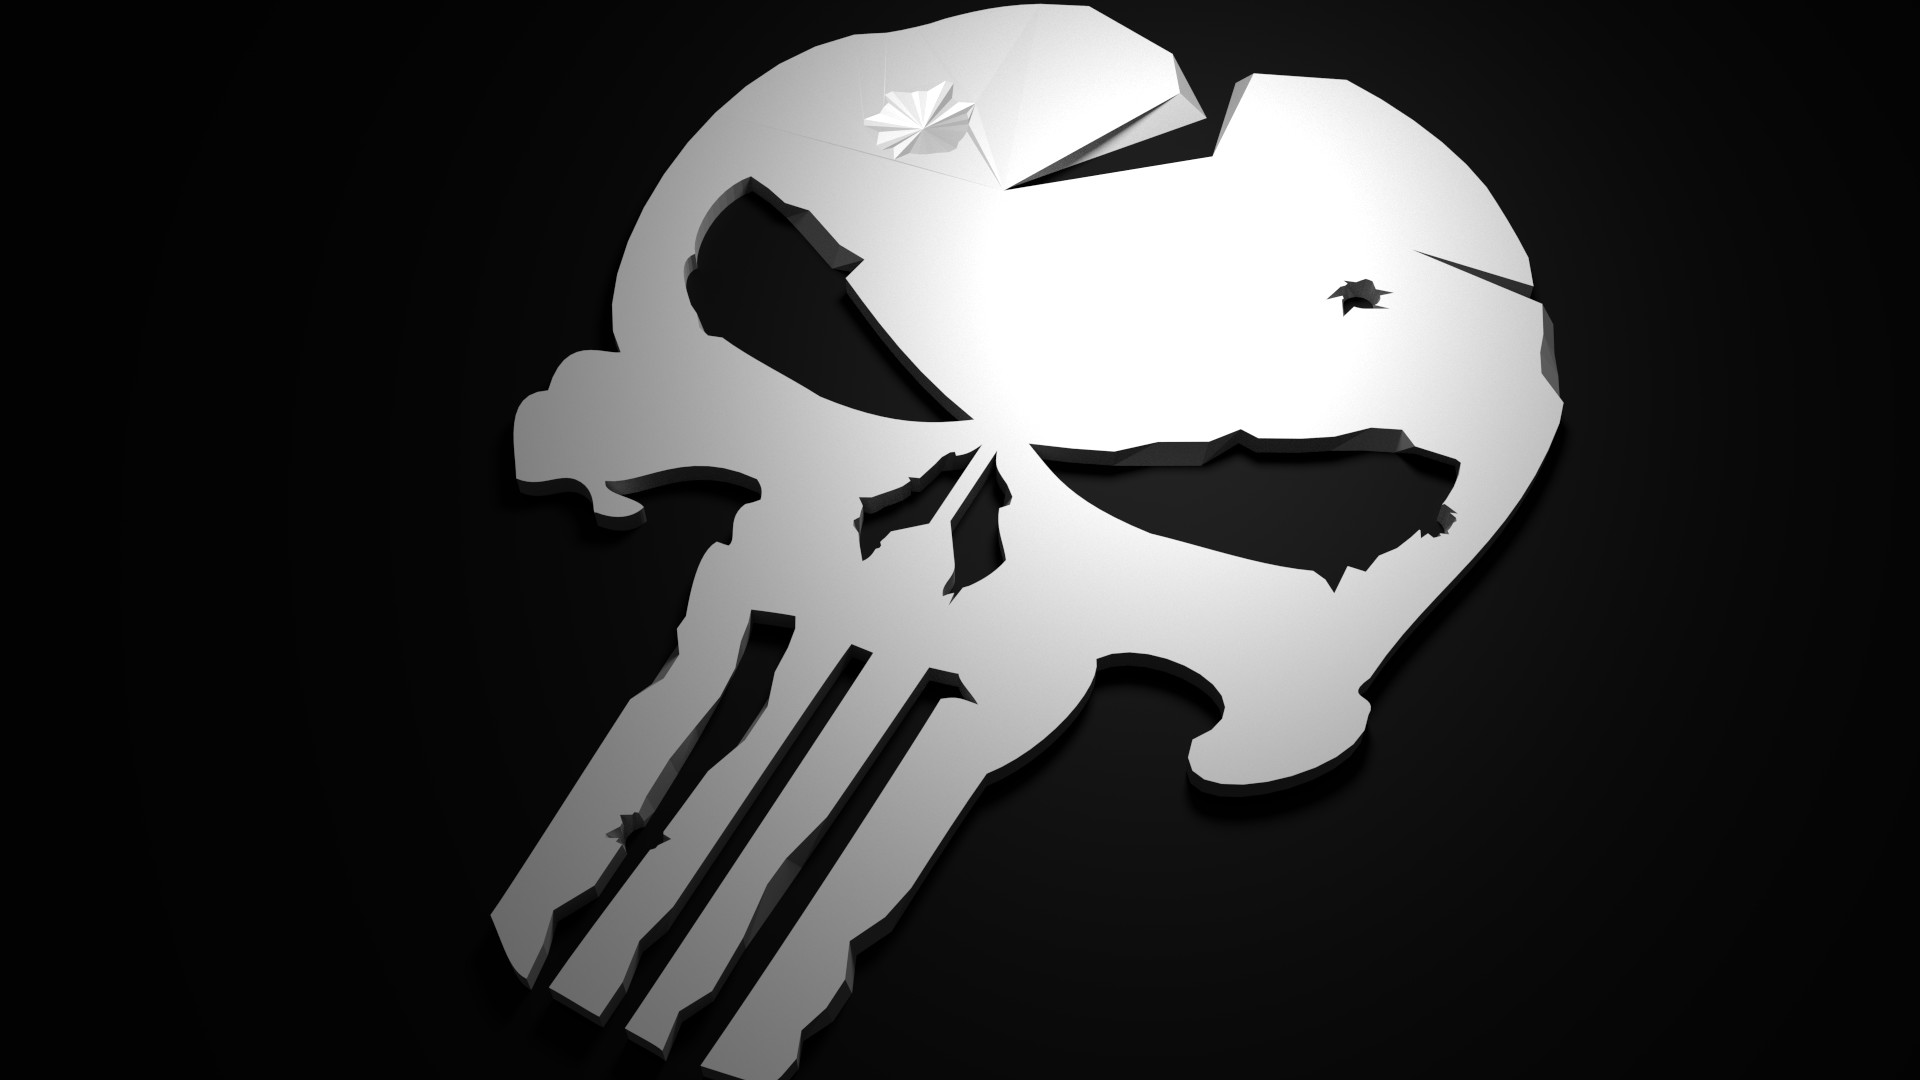 1920x1080 Low Poly Punisher (1920 x 1080) HD Wallpaper From Gallsource.com